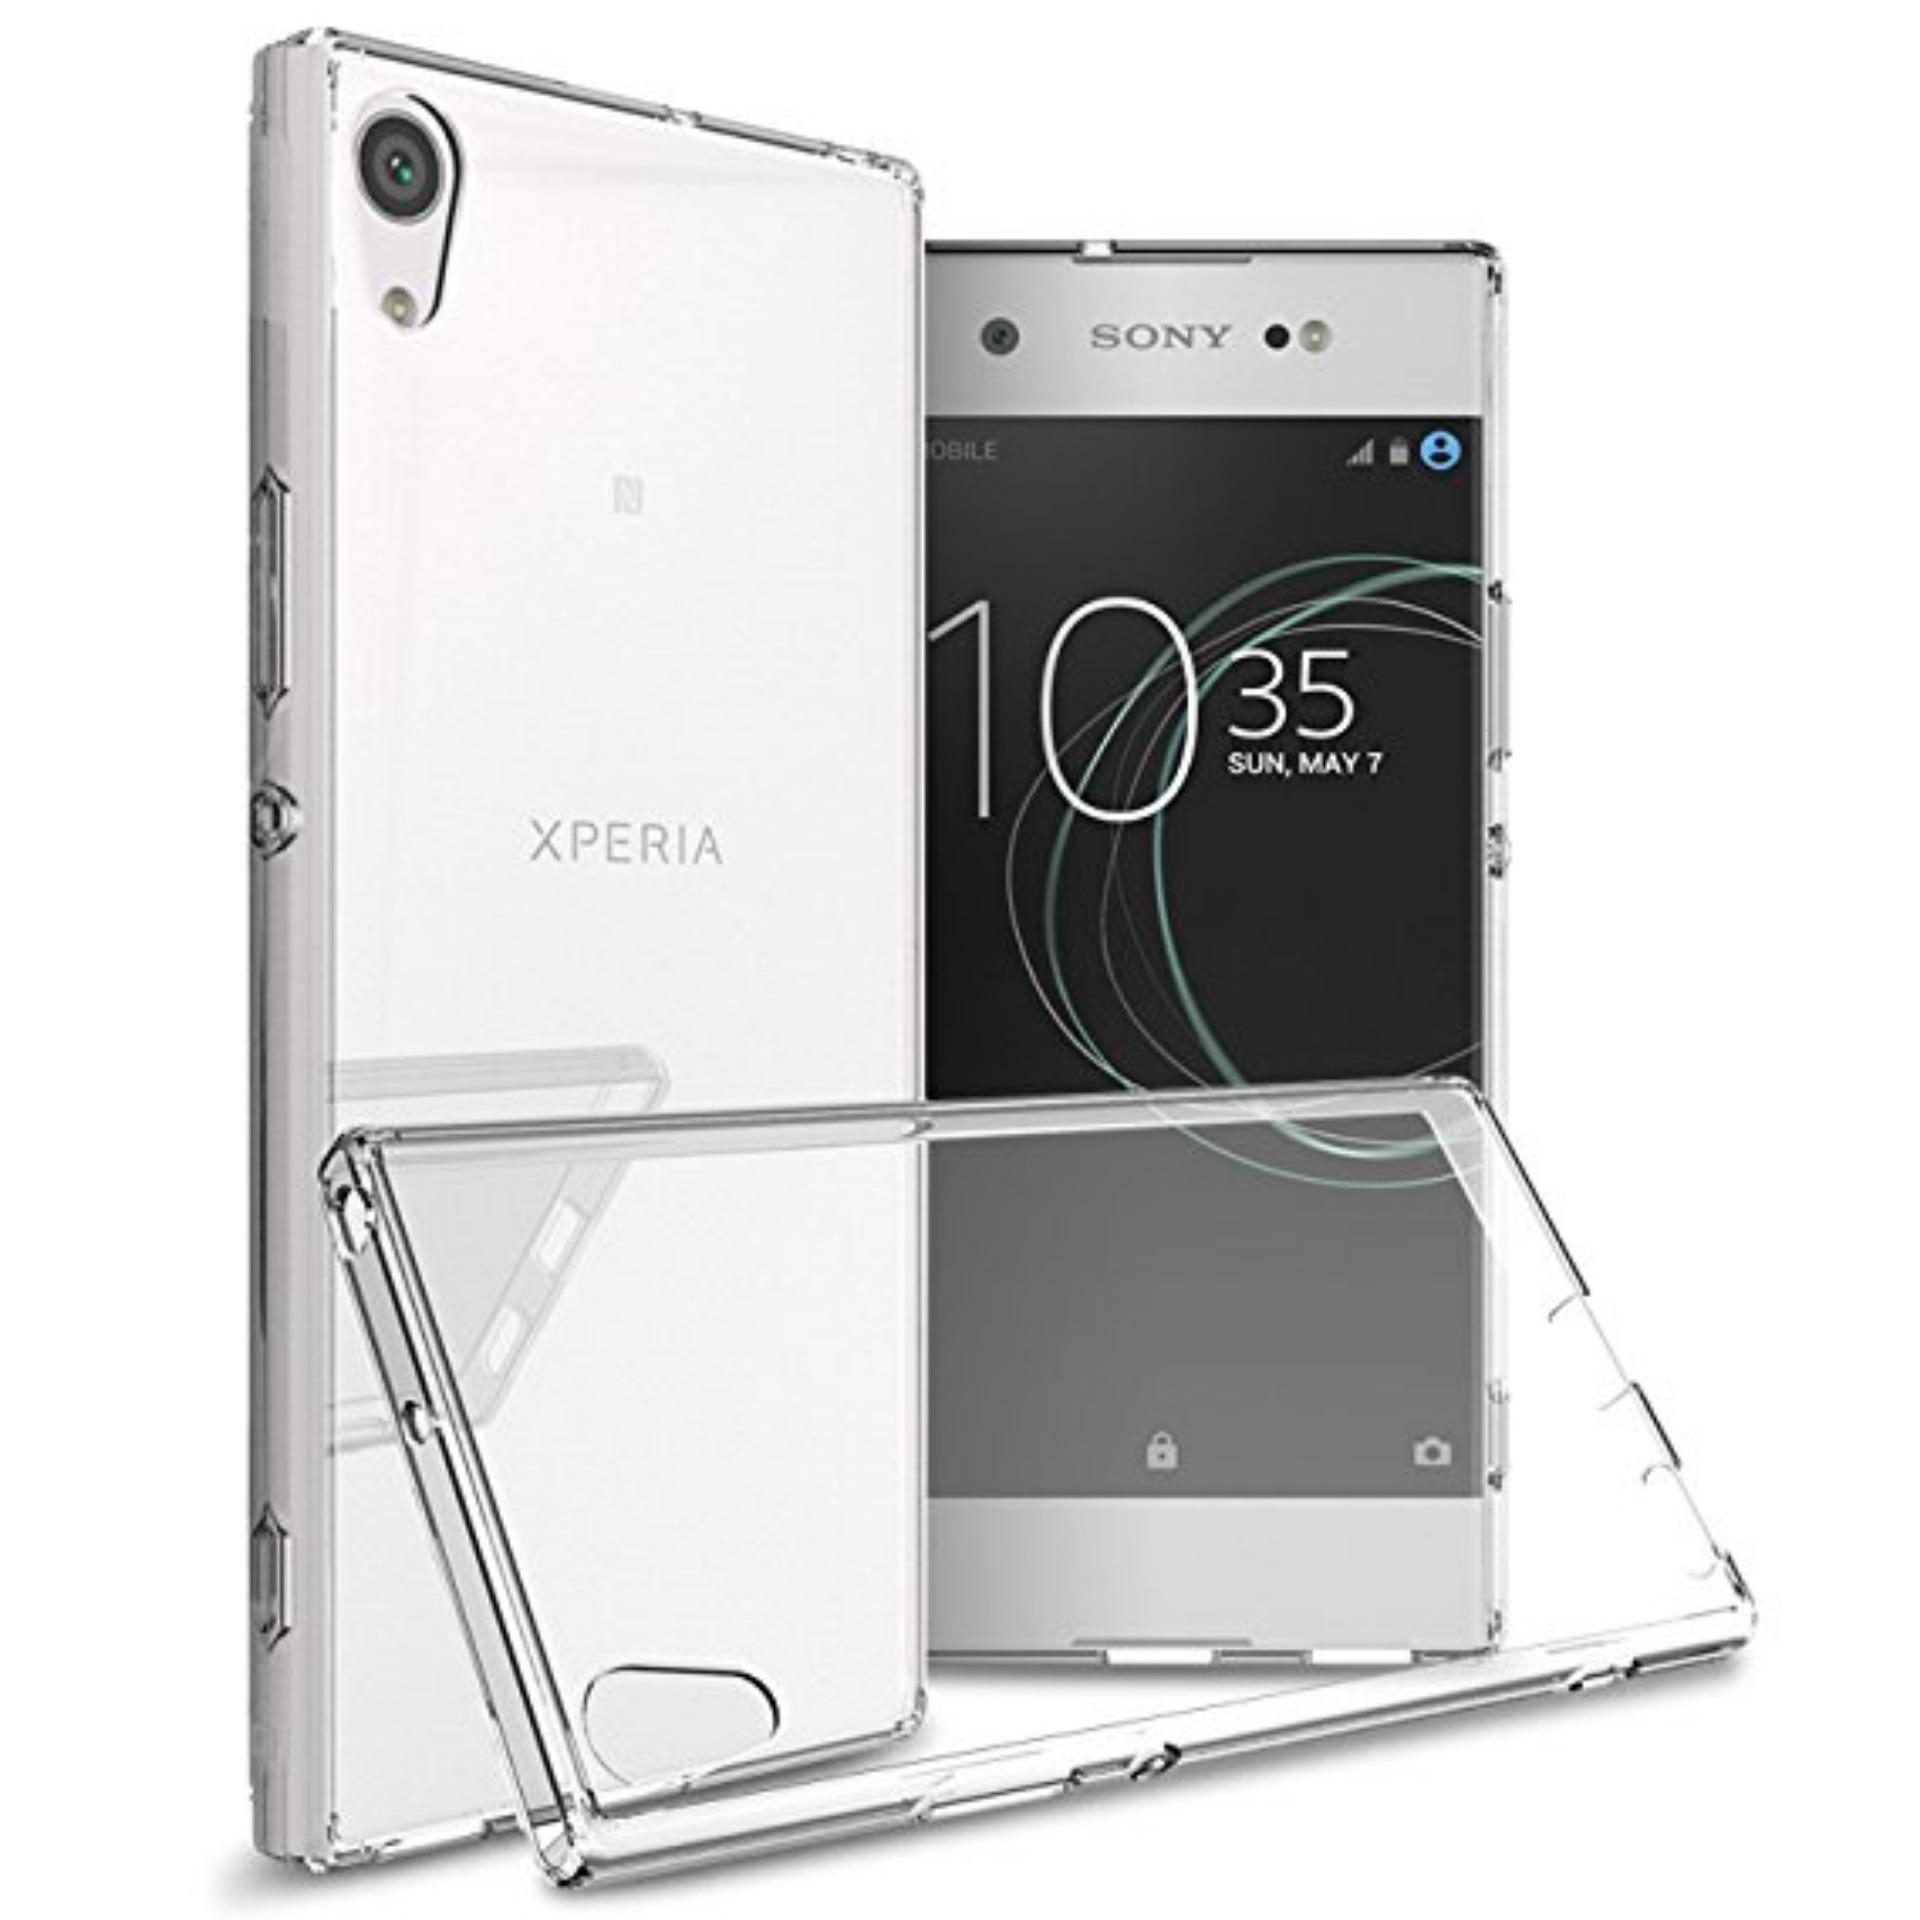 LOLLYPOP Ultrathin TPU Jelly Sony Xperia Xa Ultra - Clear/Transparant Softcase Silicone Backcase Backcover Case HP Casing Handphone